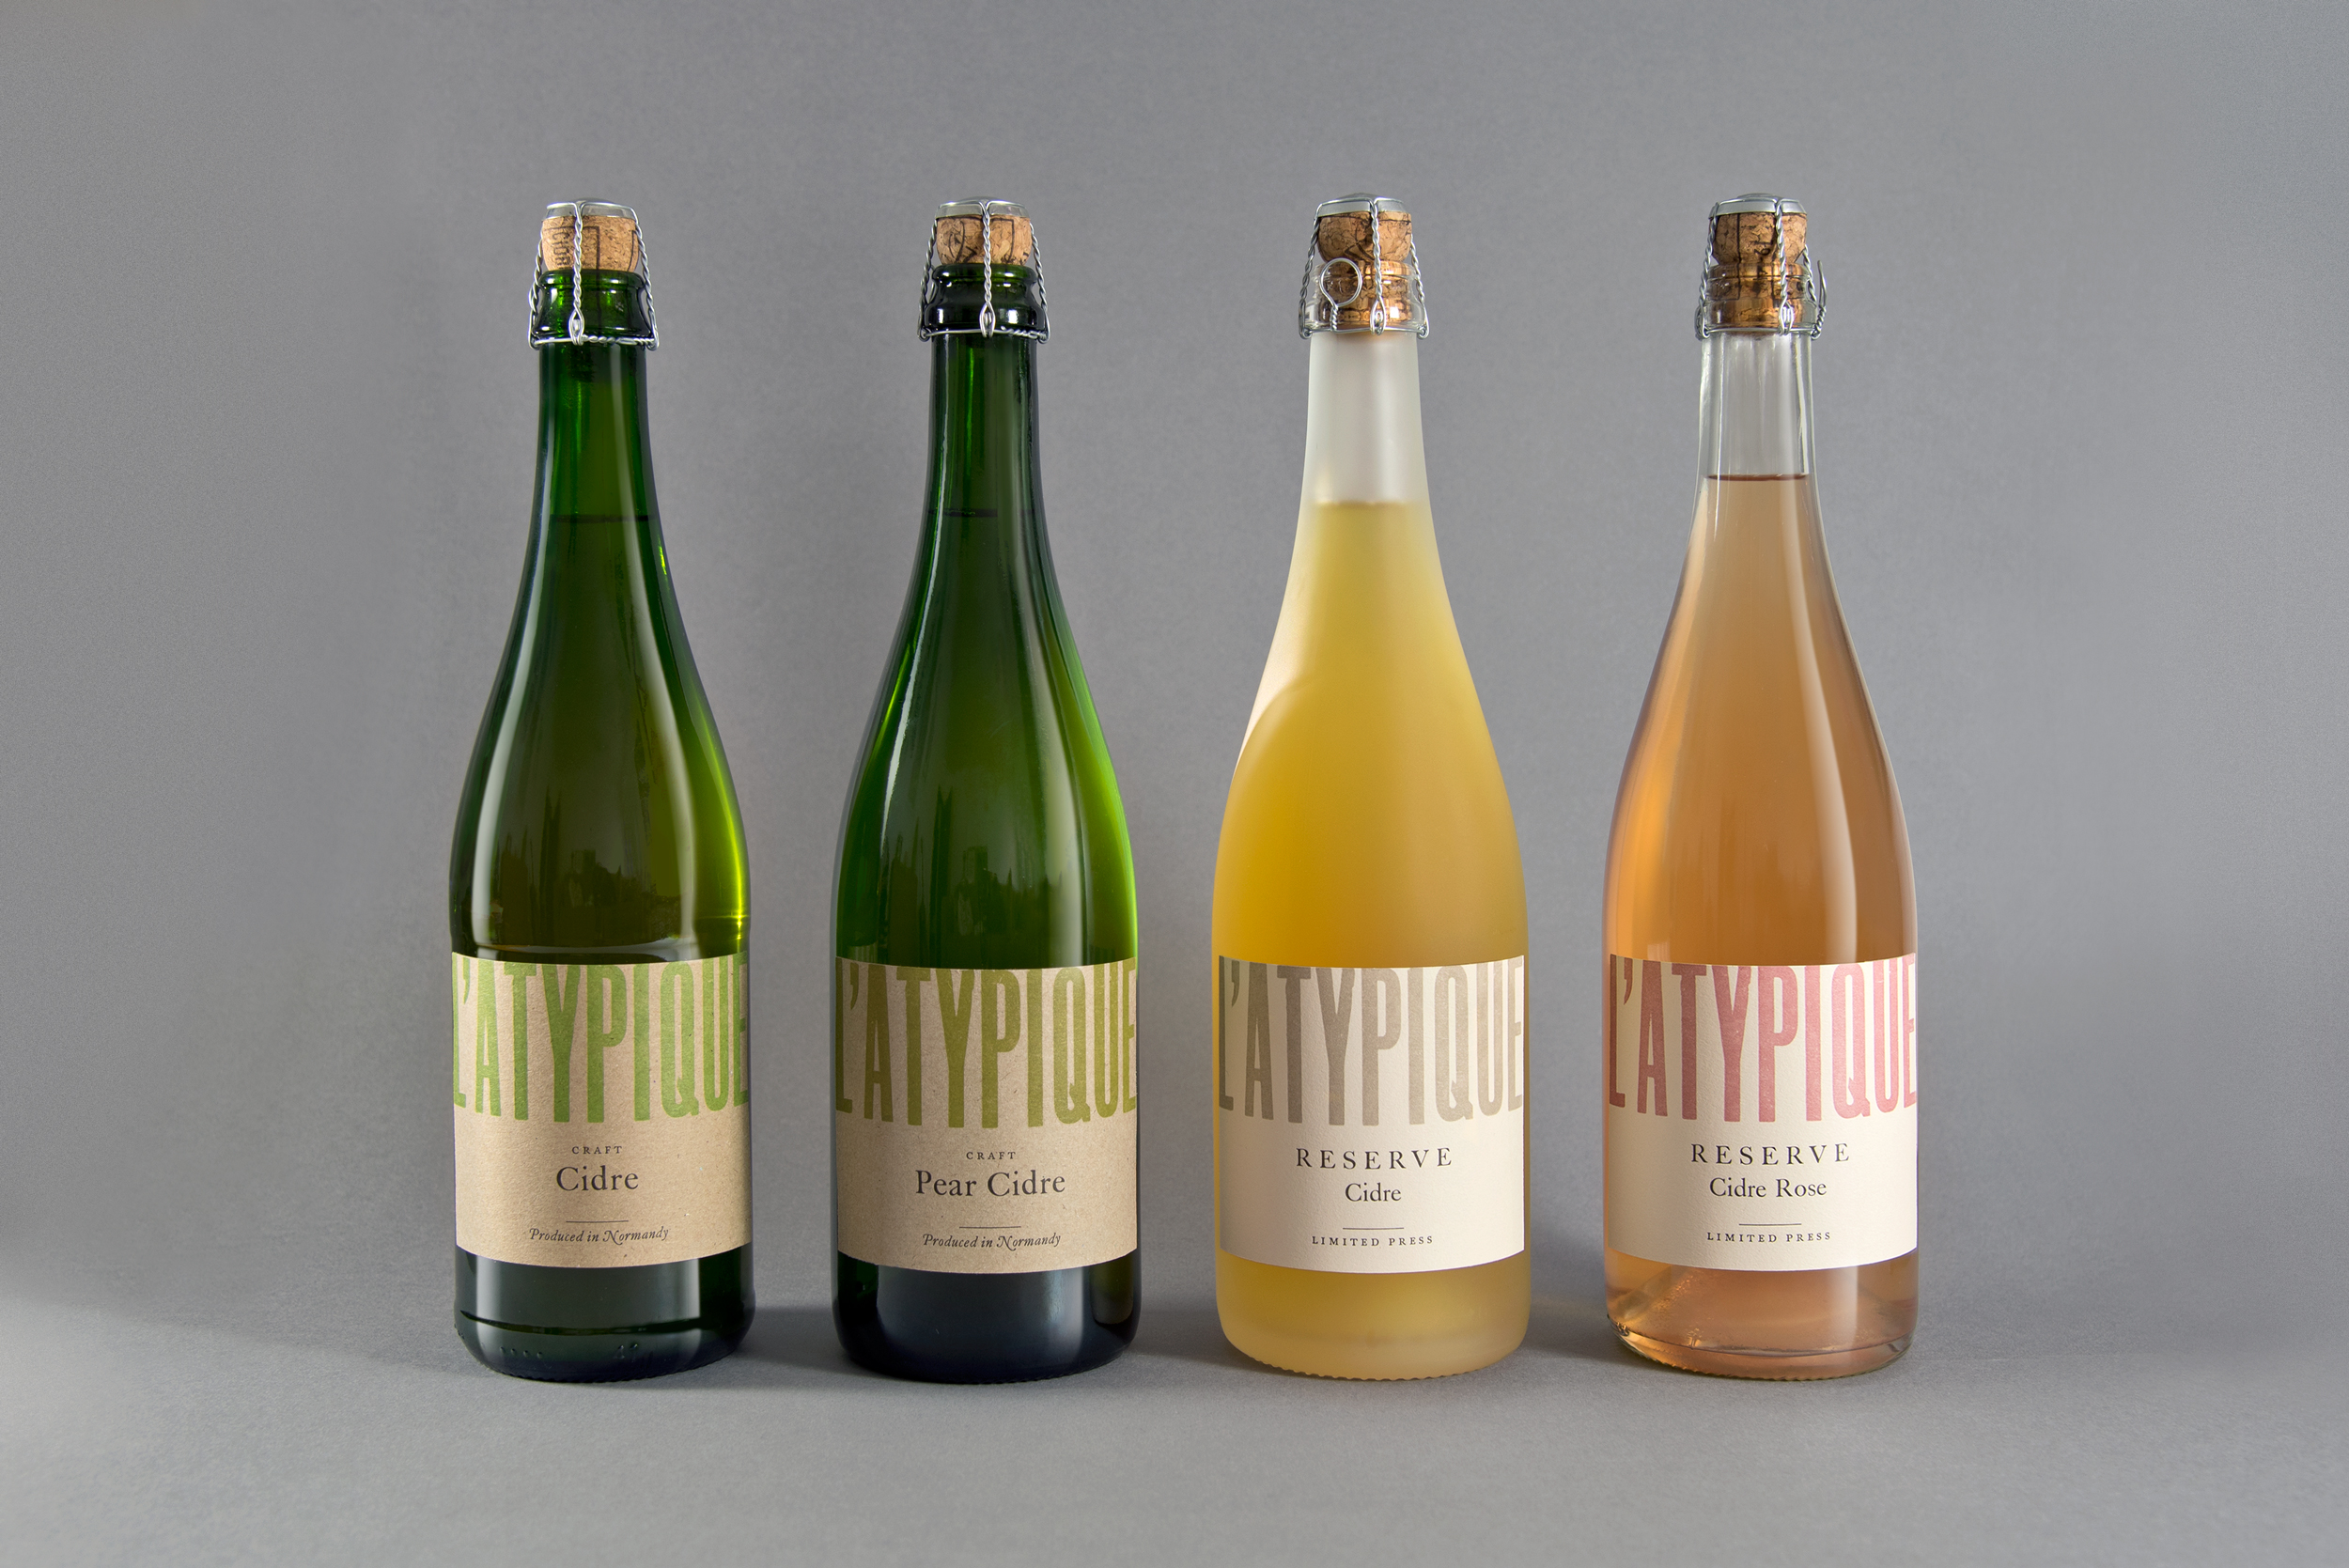 CounterStudio_LAtypique_Bottles_row_1.jpg